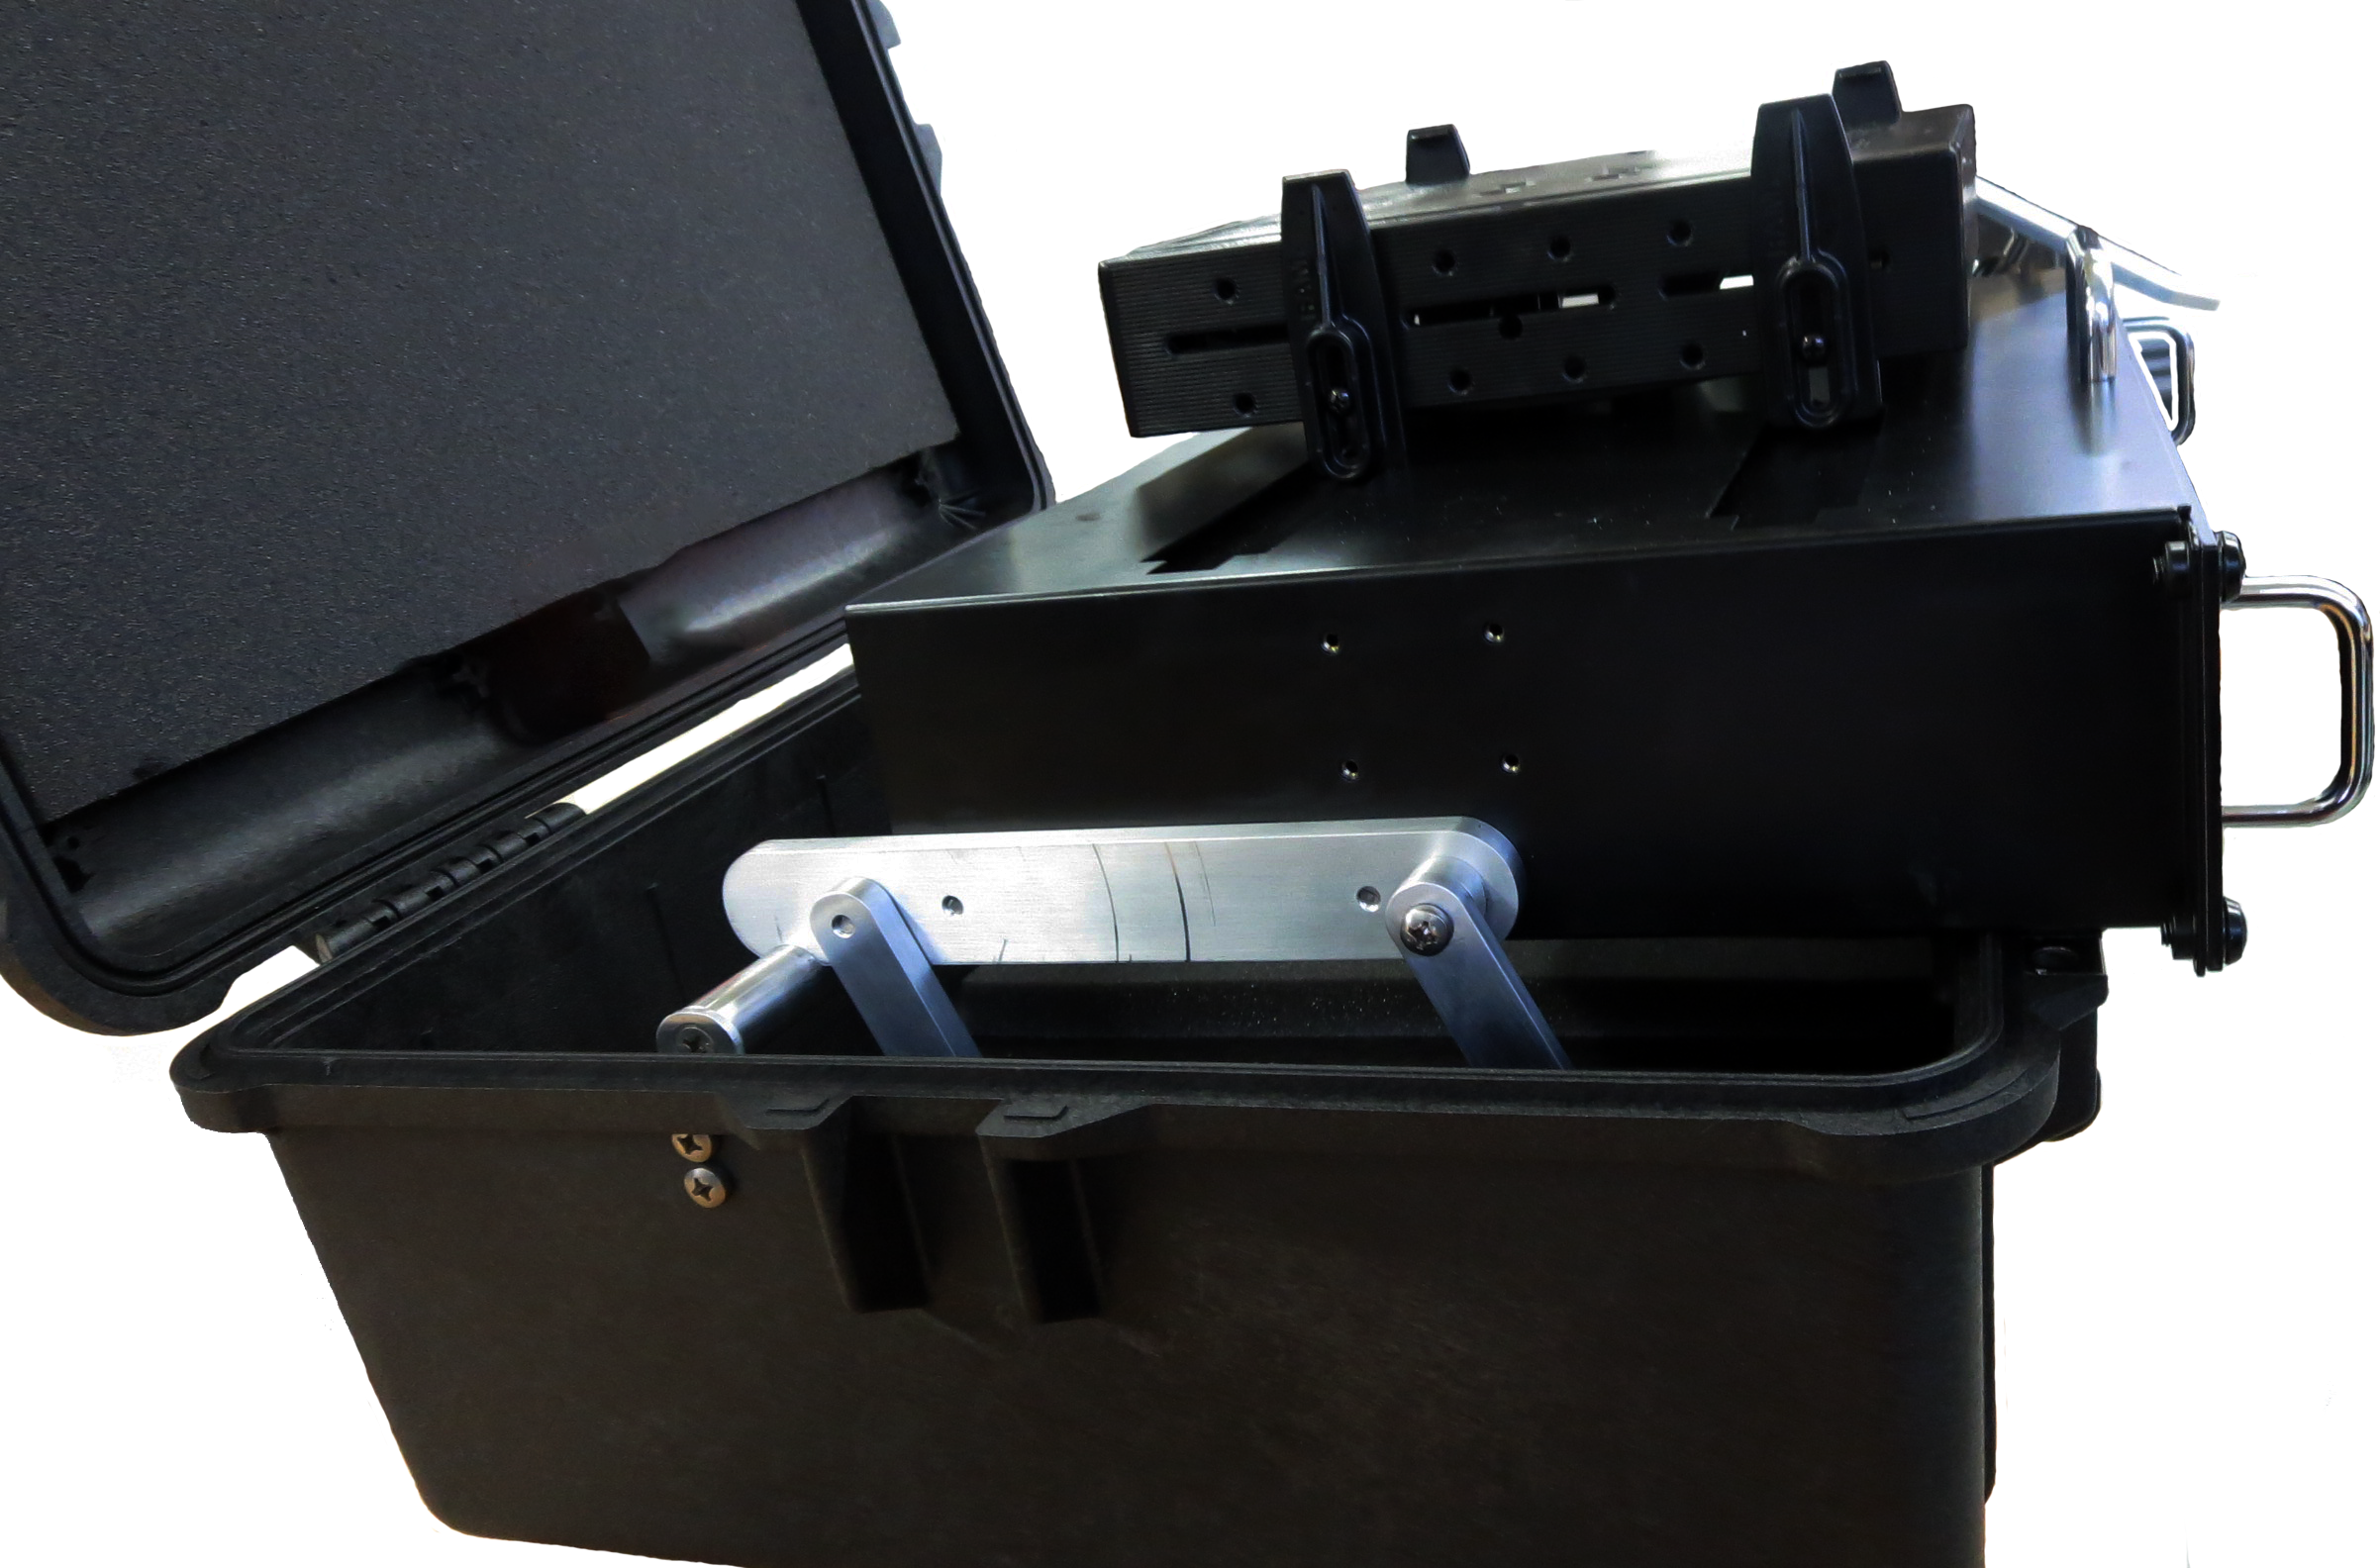 Control and Carry Case (laptop not shown)